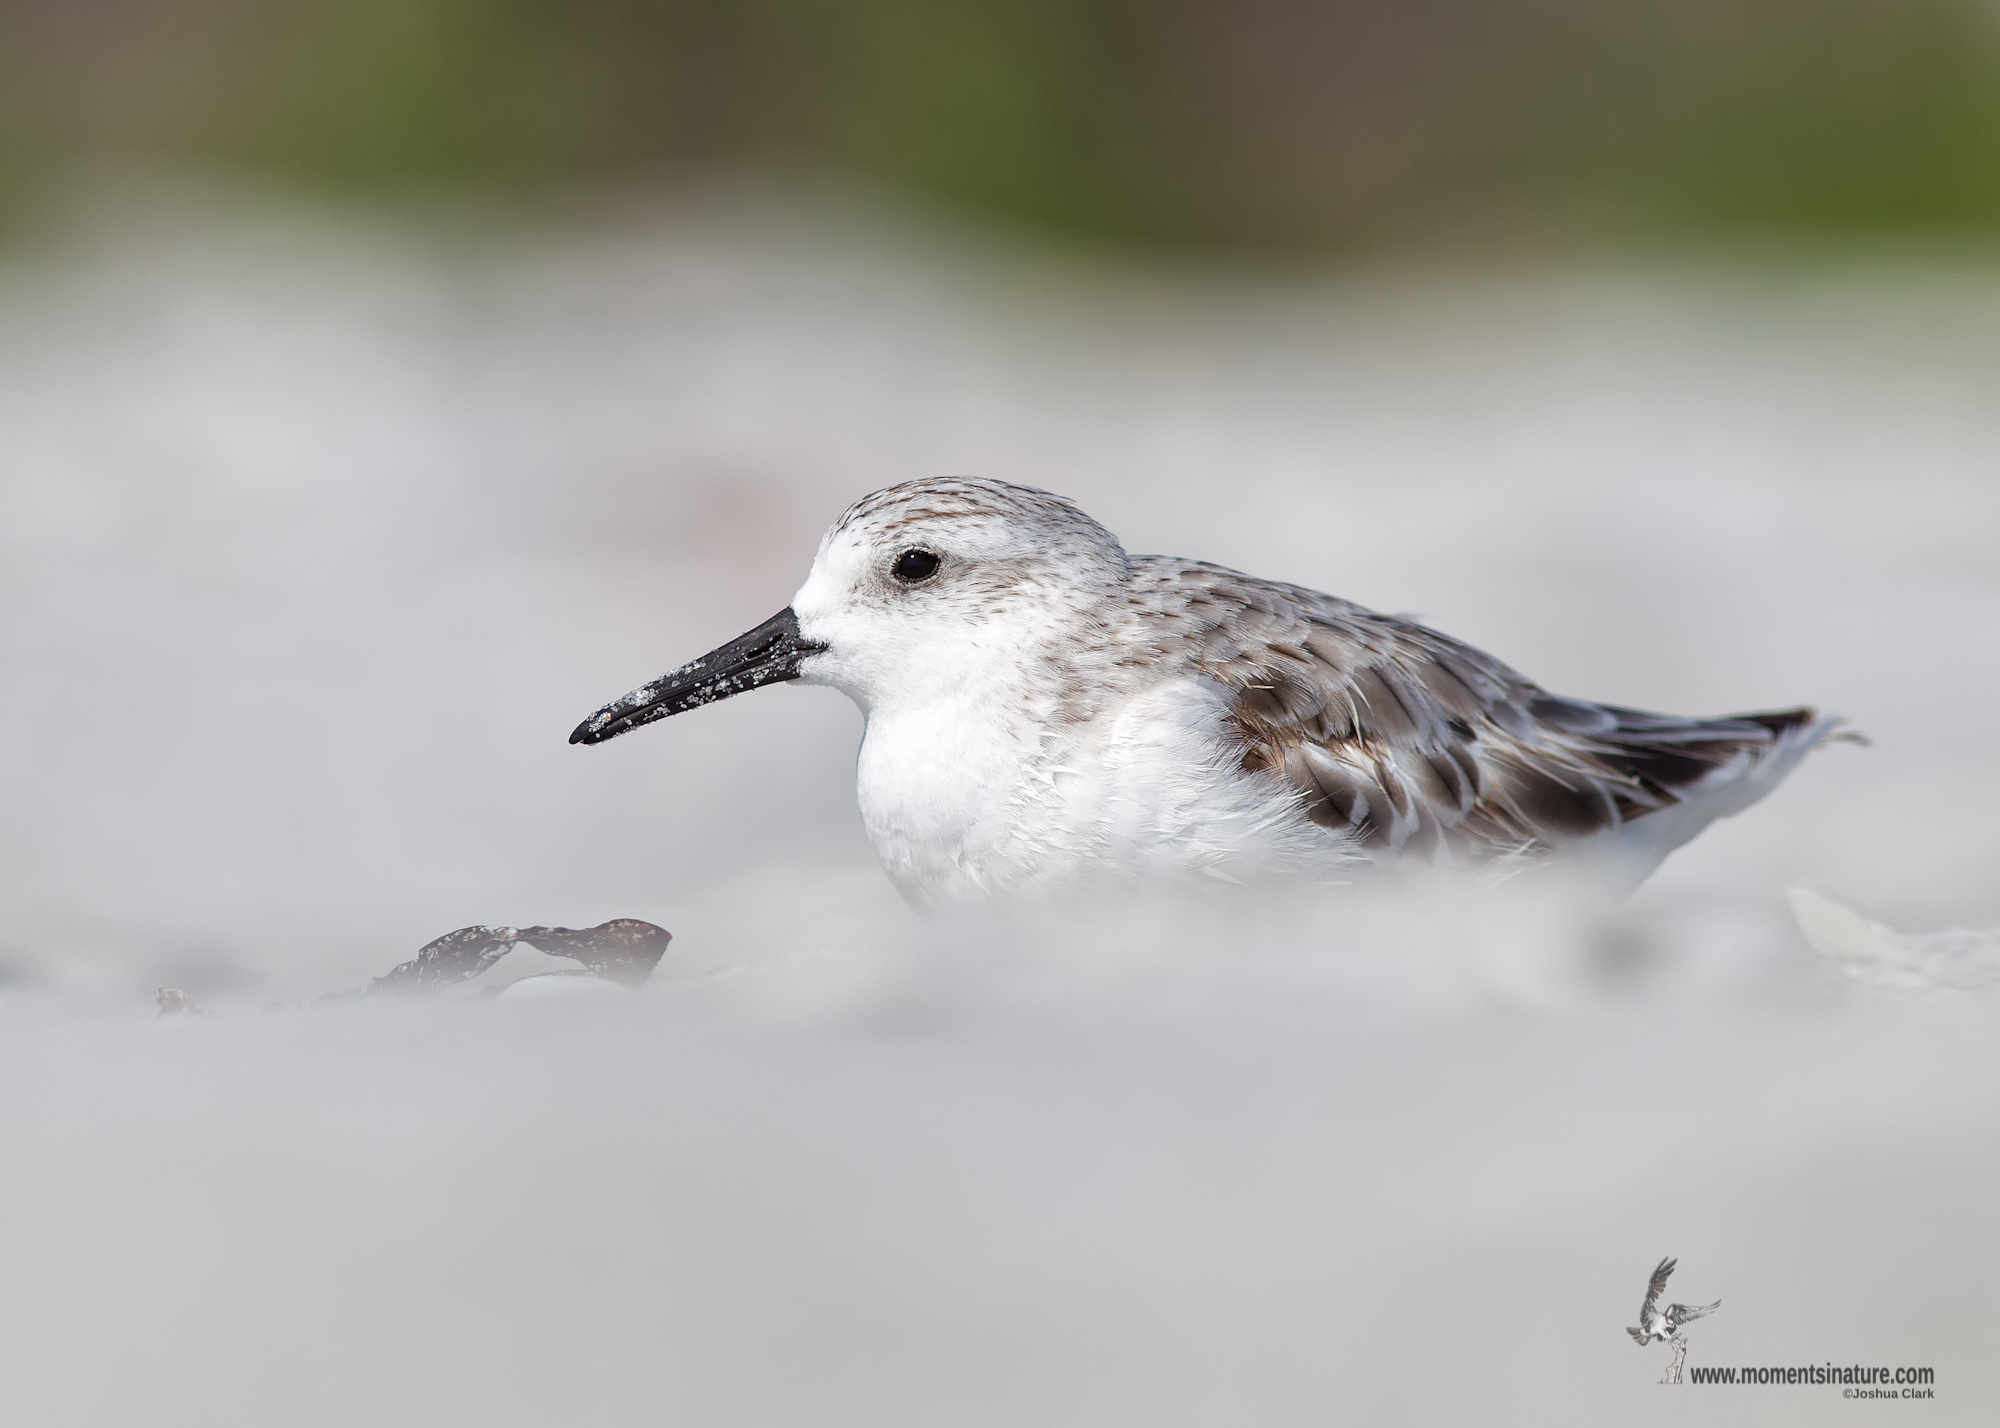 eBird maps show broad distribution of Sanderling in late summer